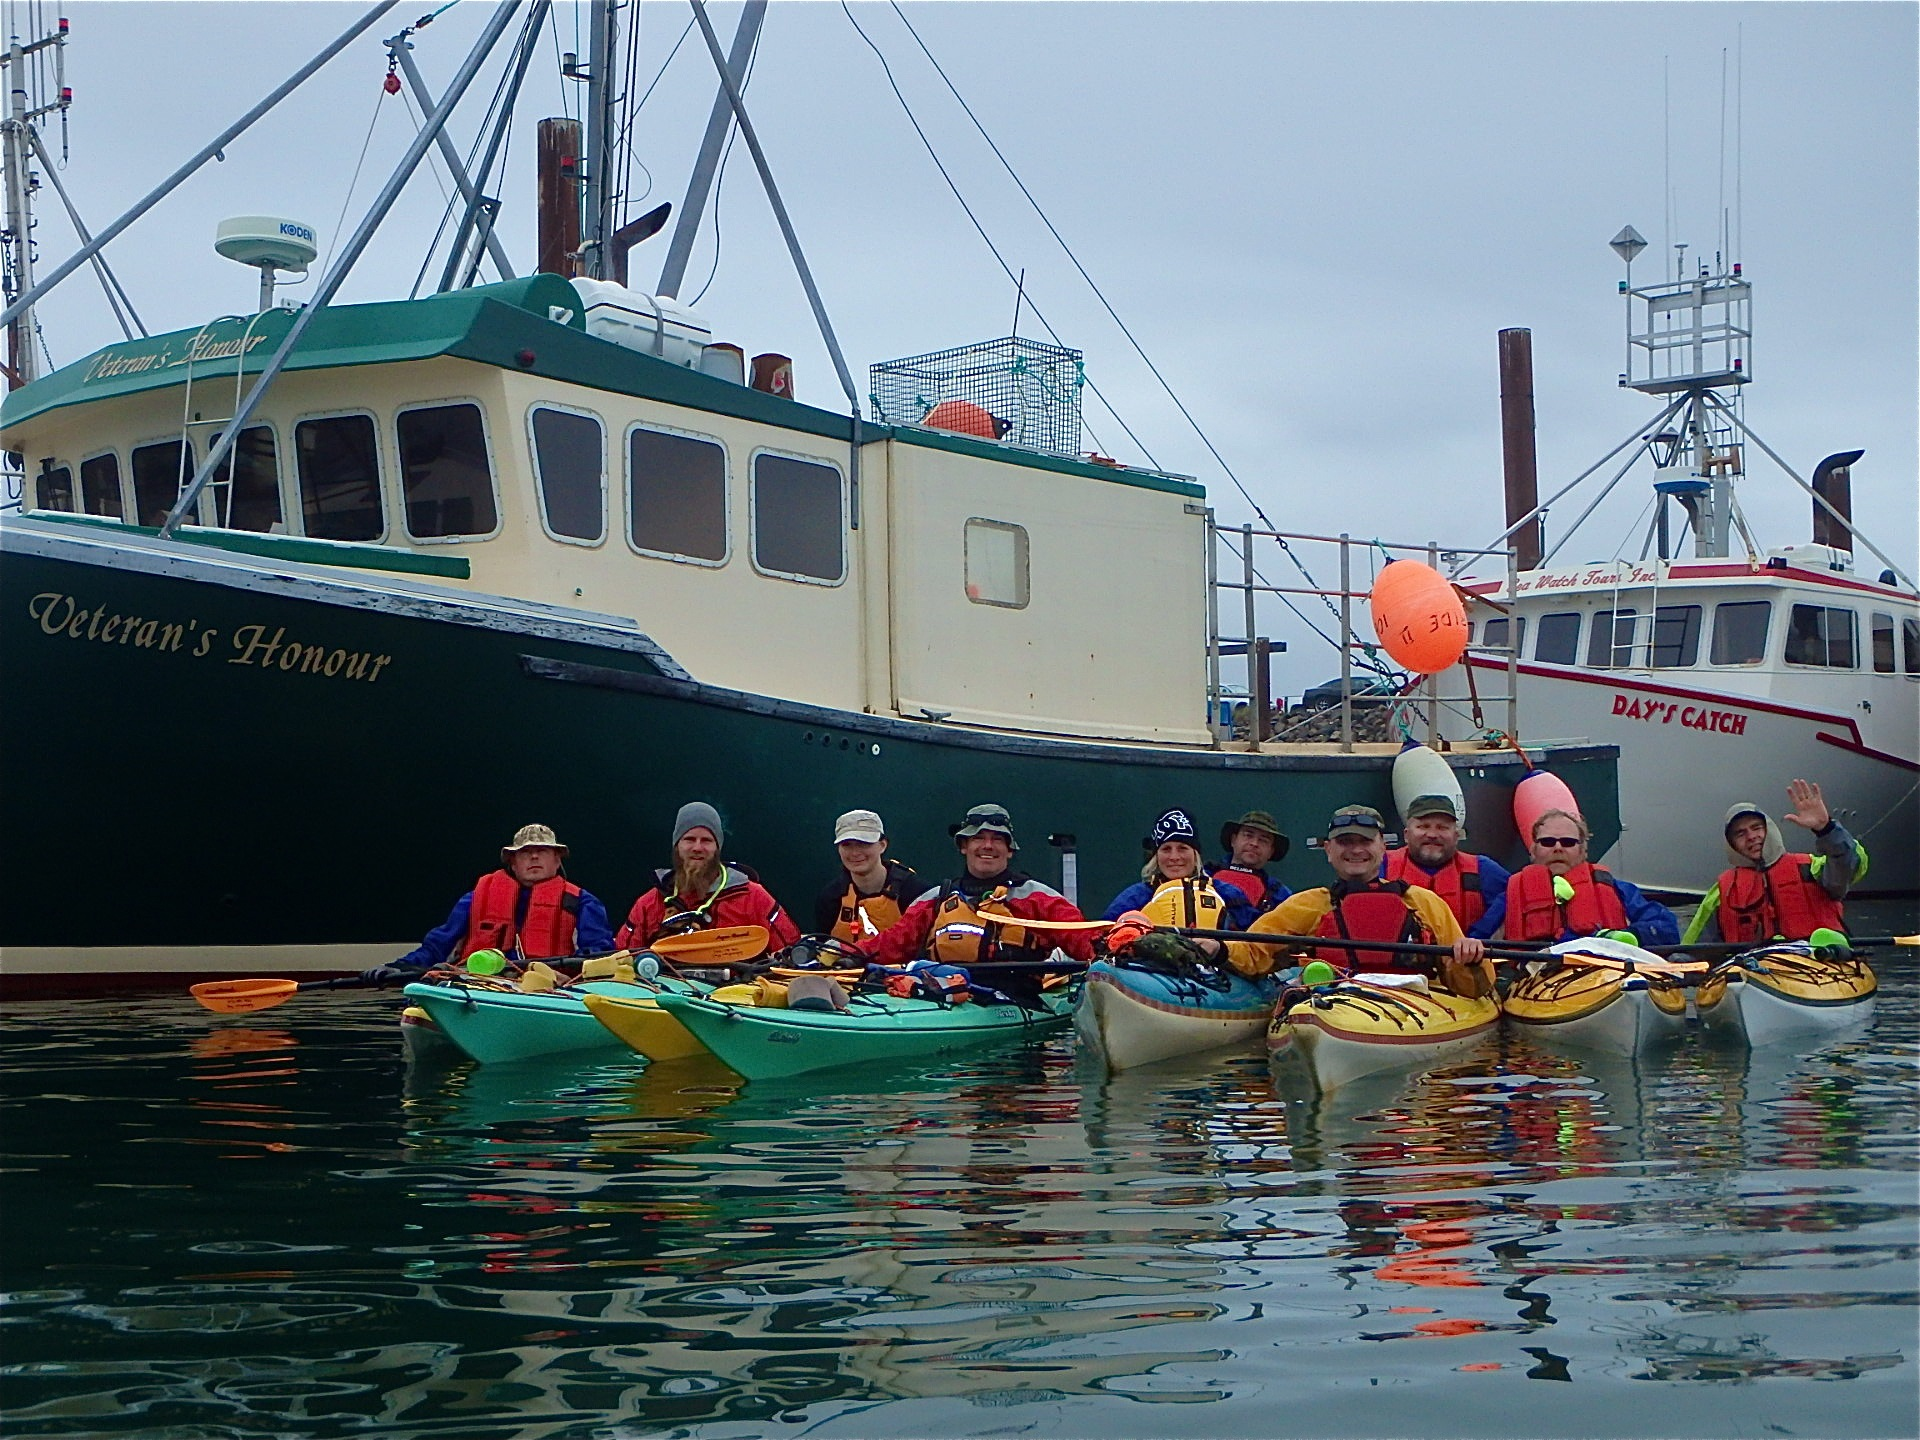 Seakayaking OutwardBound veteranshonour